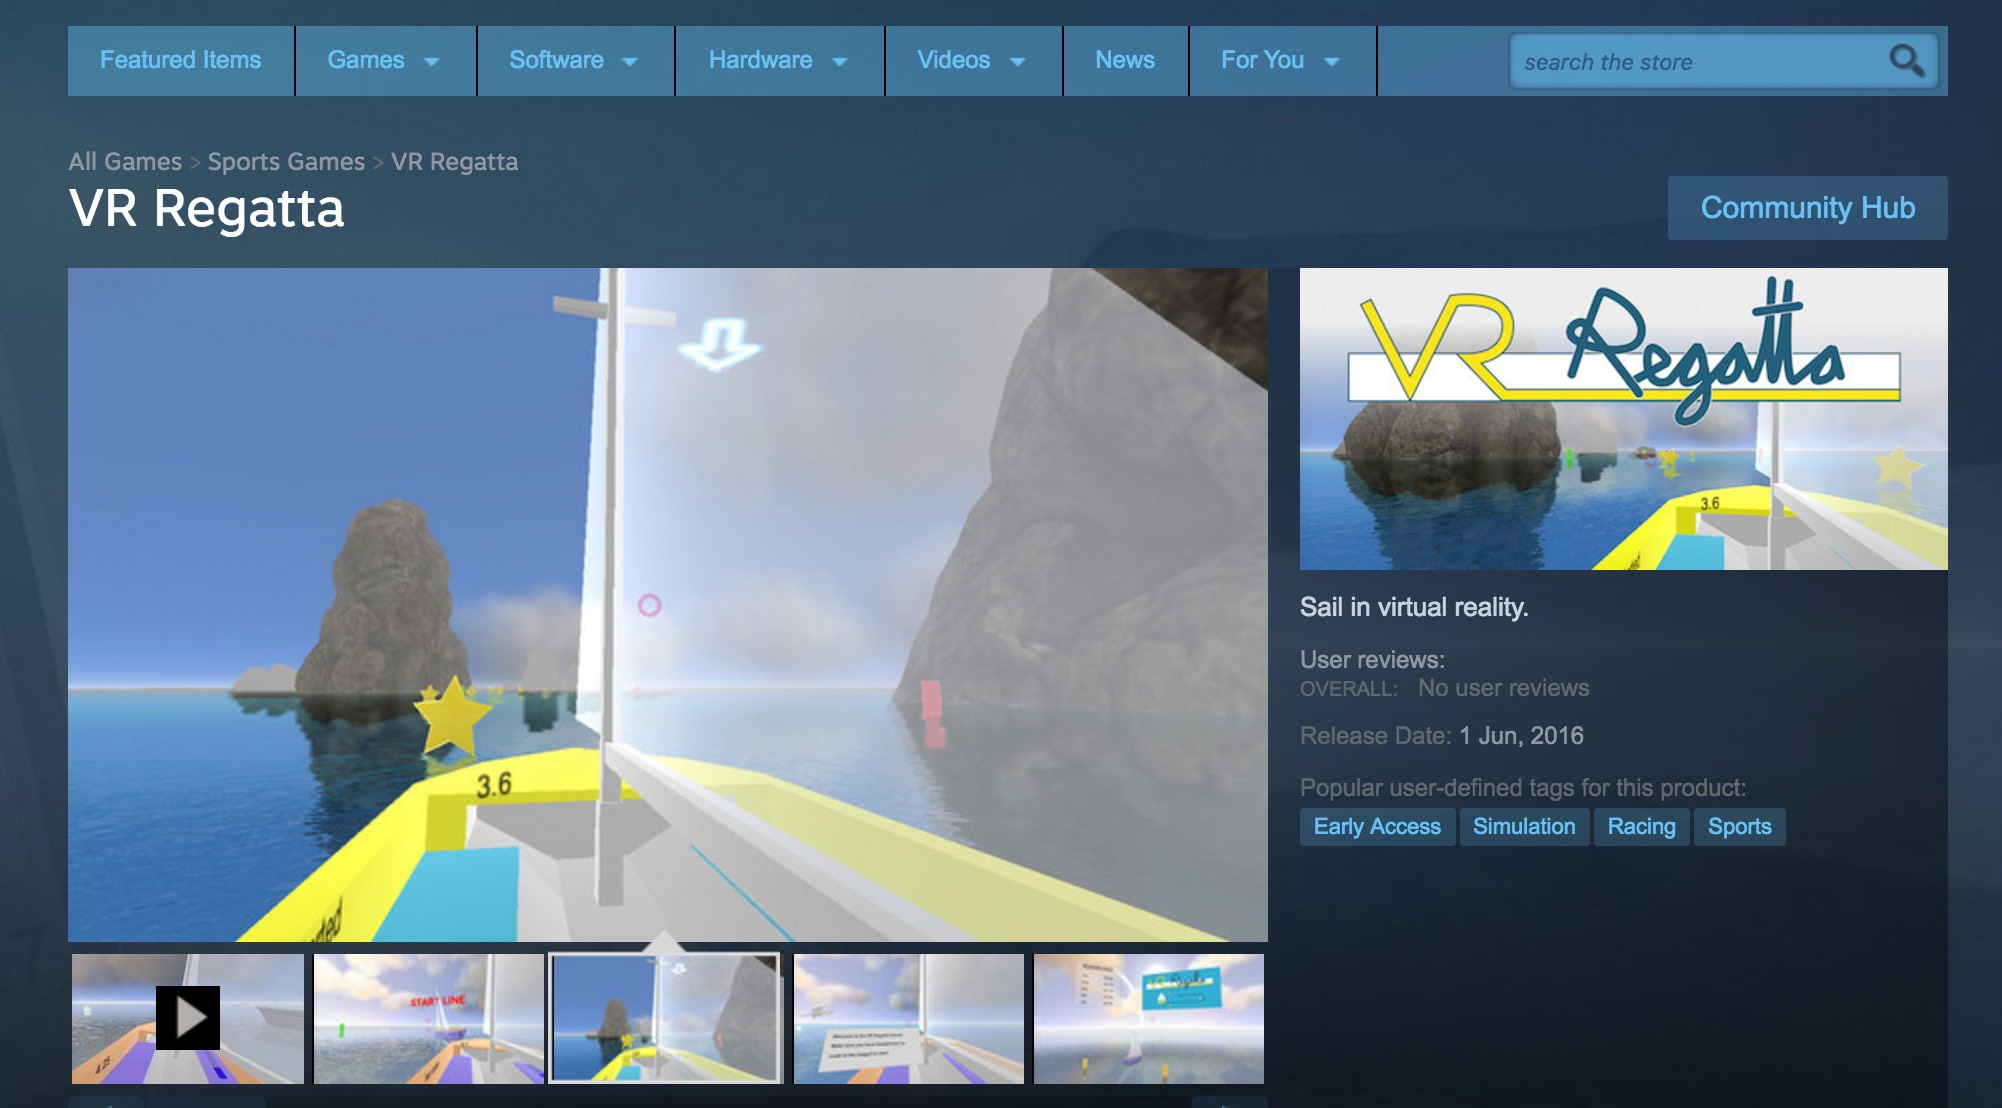 VR Regatta on Steam